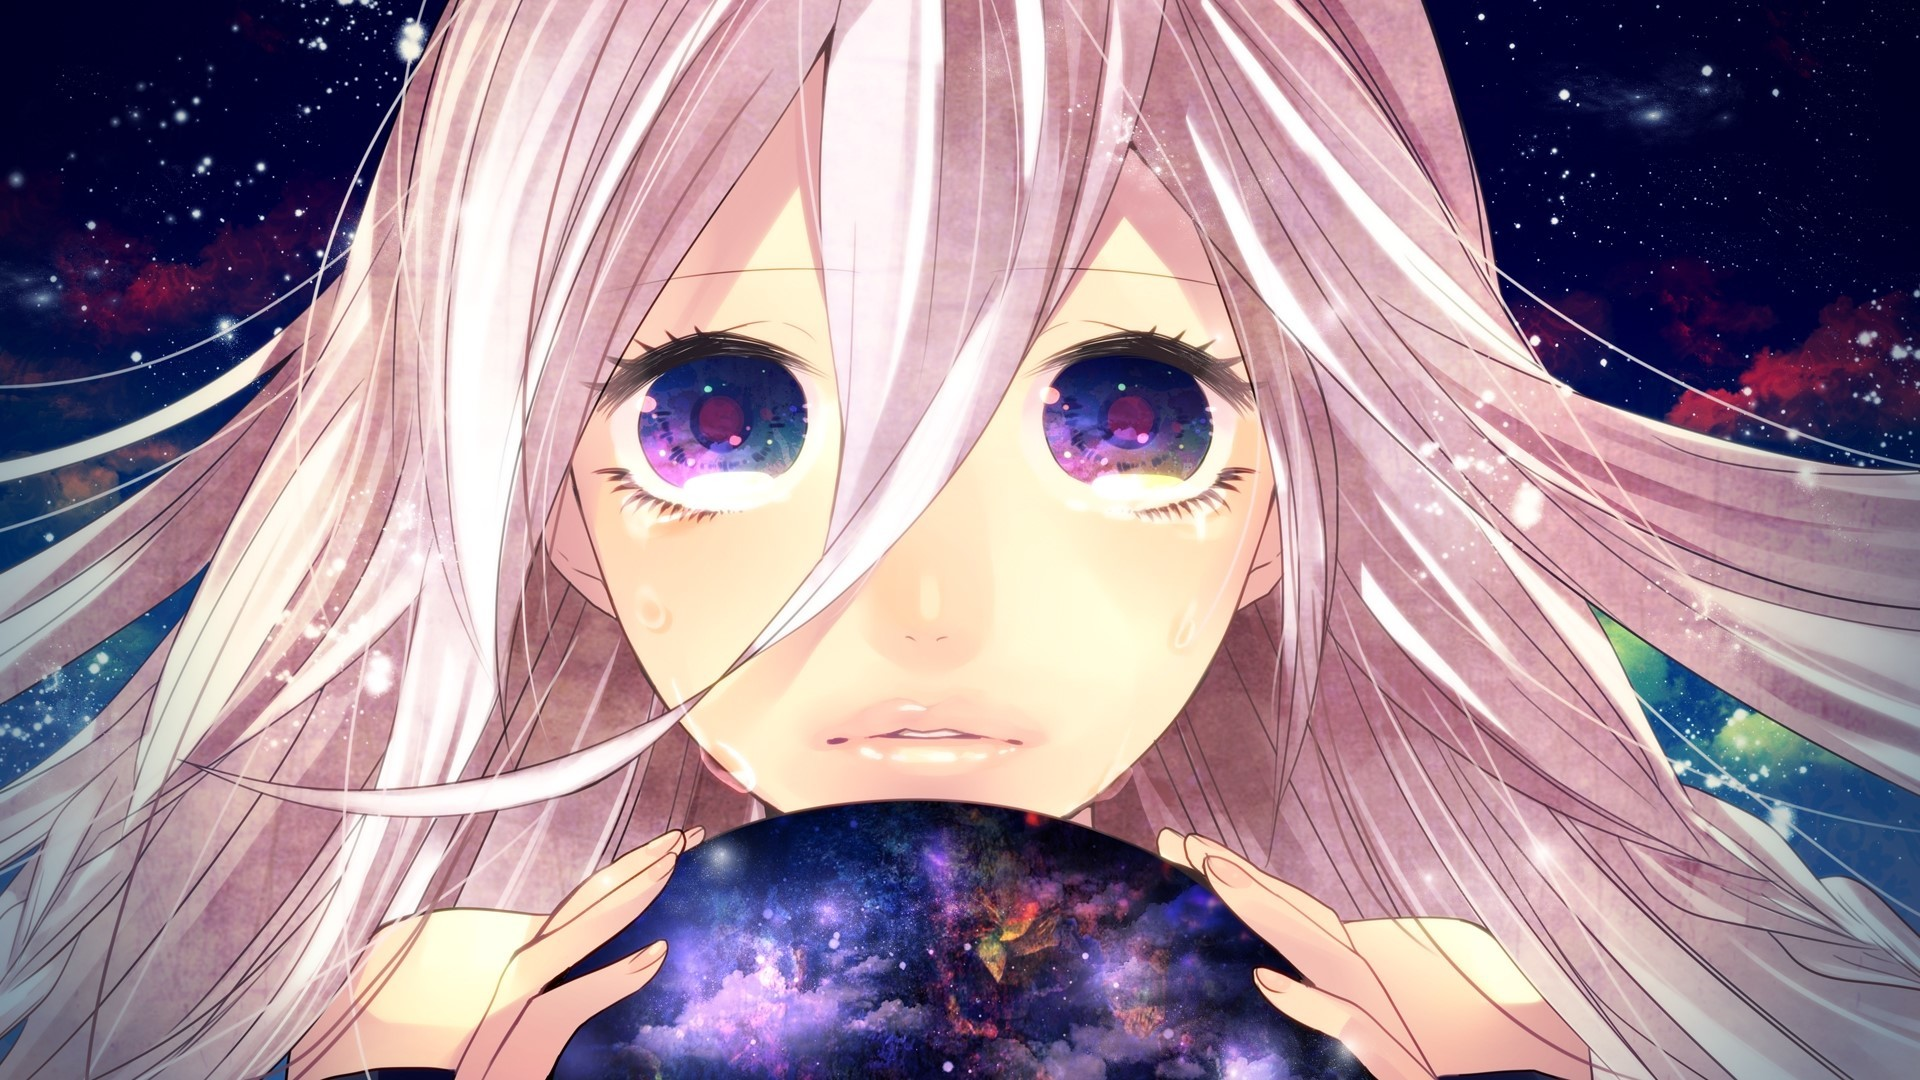 1920x1080  Ia vocaloid, Girl, Pink hair, Tears, Planet, Space, Colorful eyes  wallpaper and background JPG